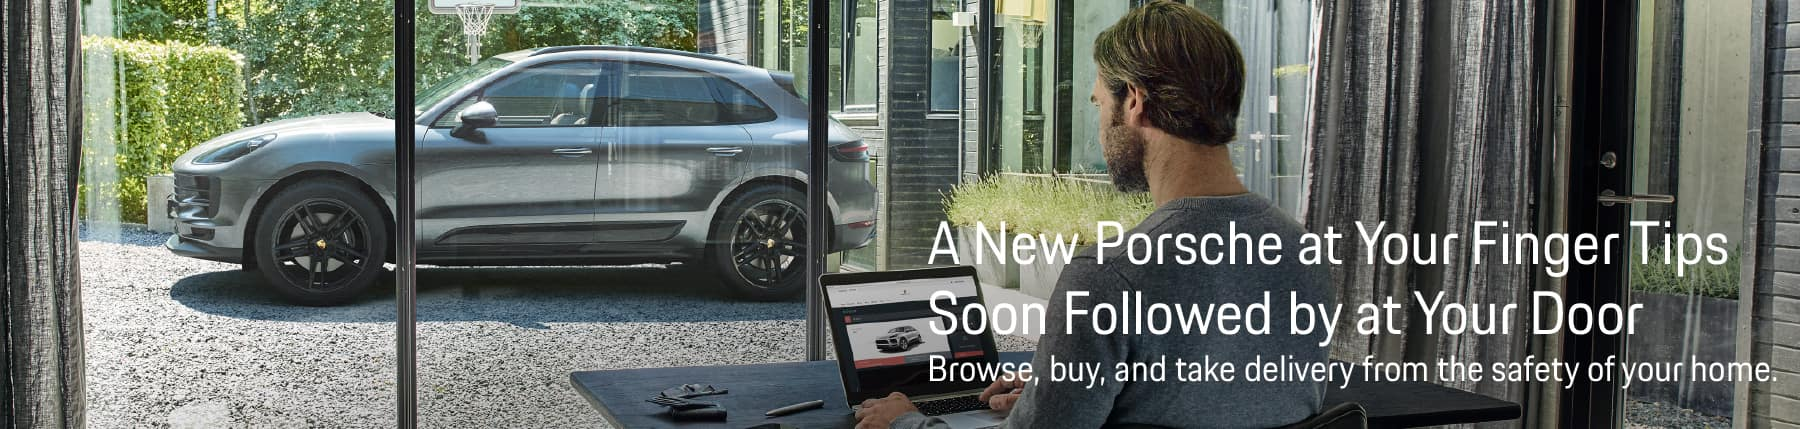 Buy your next Porsche from the comfort of your own home or office with Home Delivery from Autobahn Porsche Fort Worth.